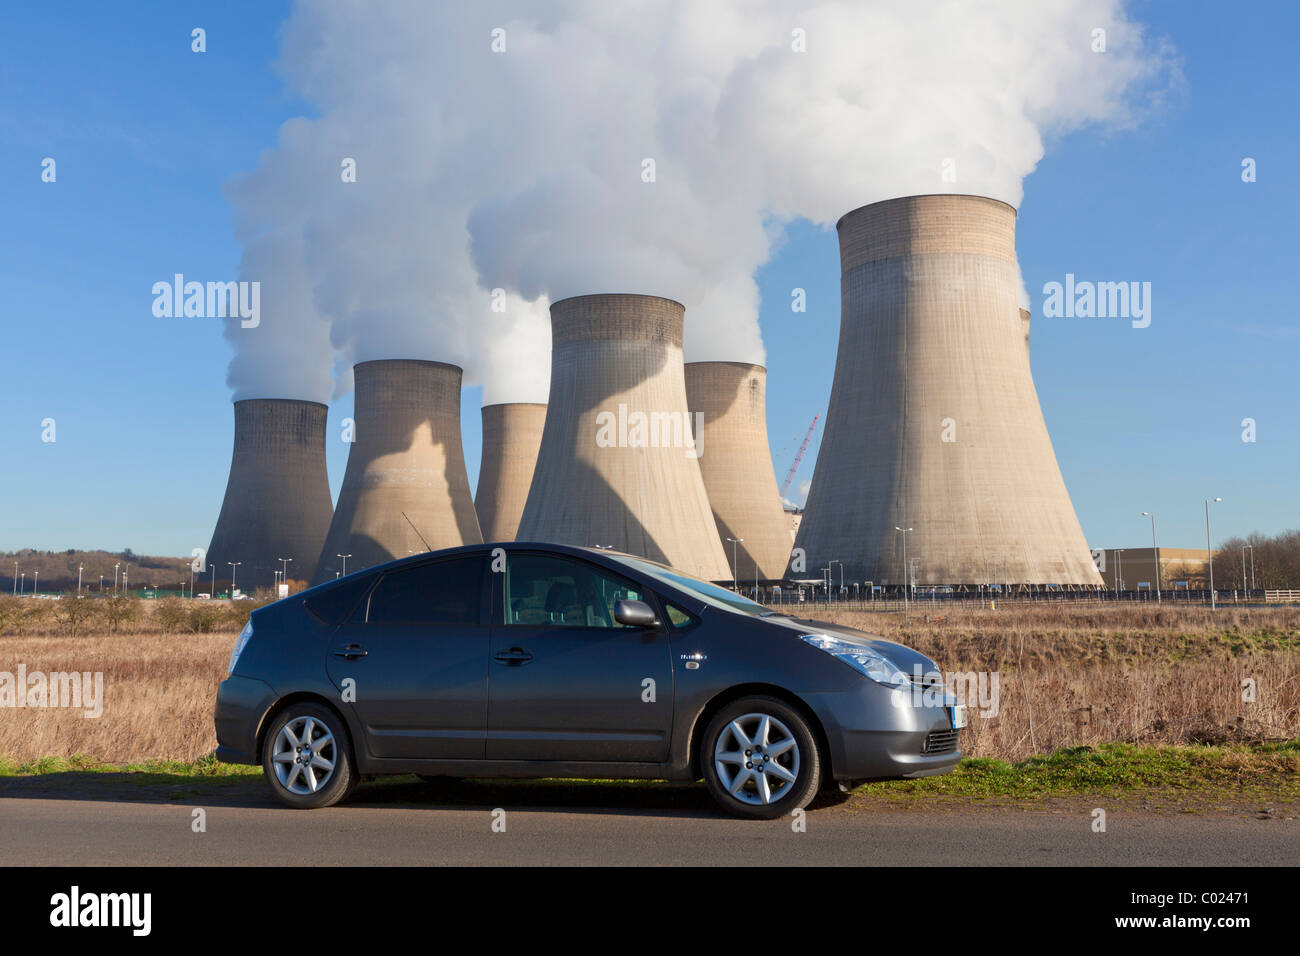 Toyota Prius hybrid car by Ratcliffe-on-Soar coal-fired power station Ratcliffe on soar Nottinghamshire England - Stock Image